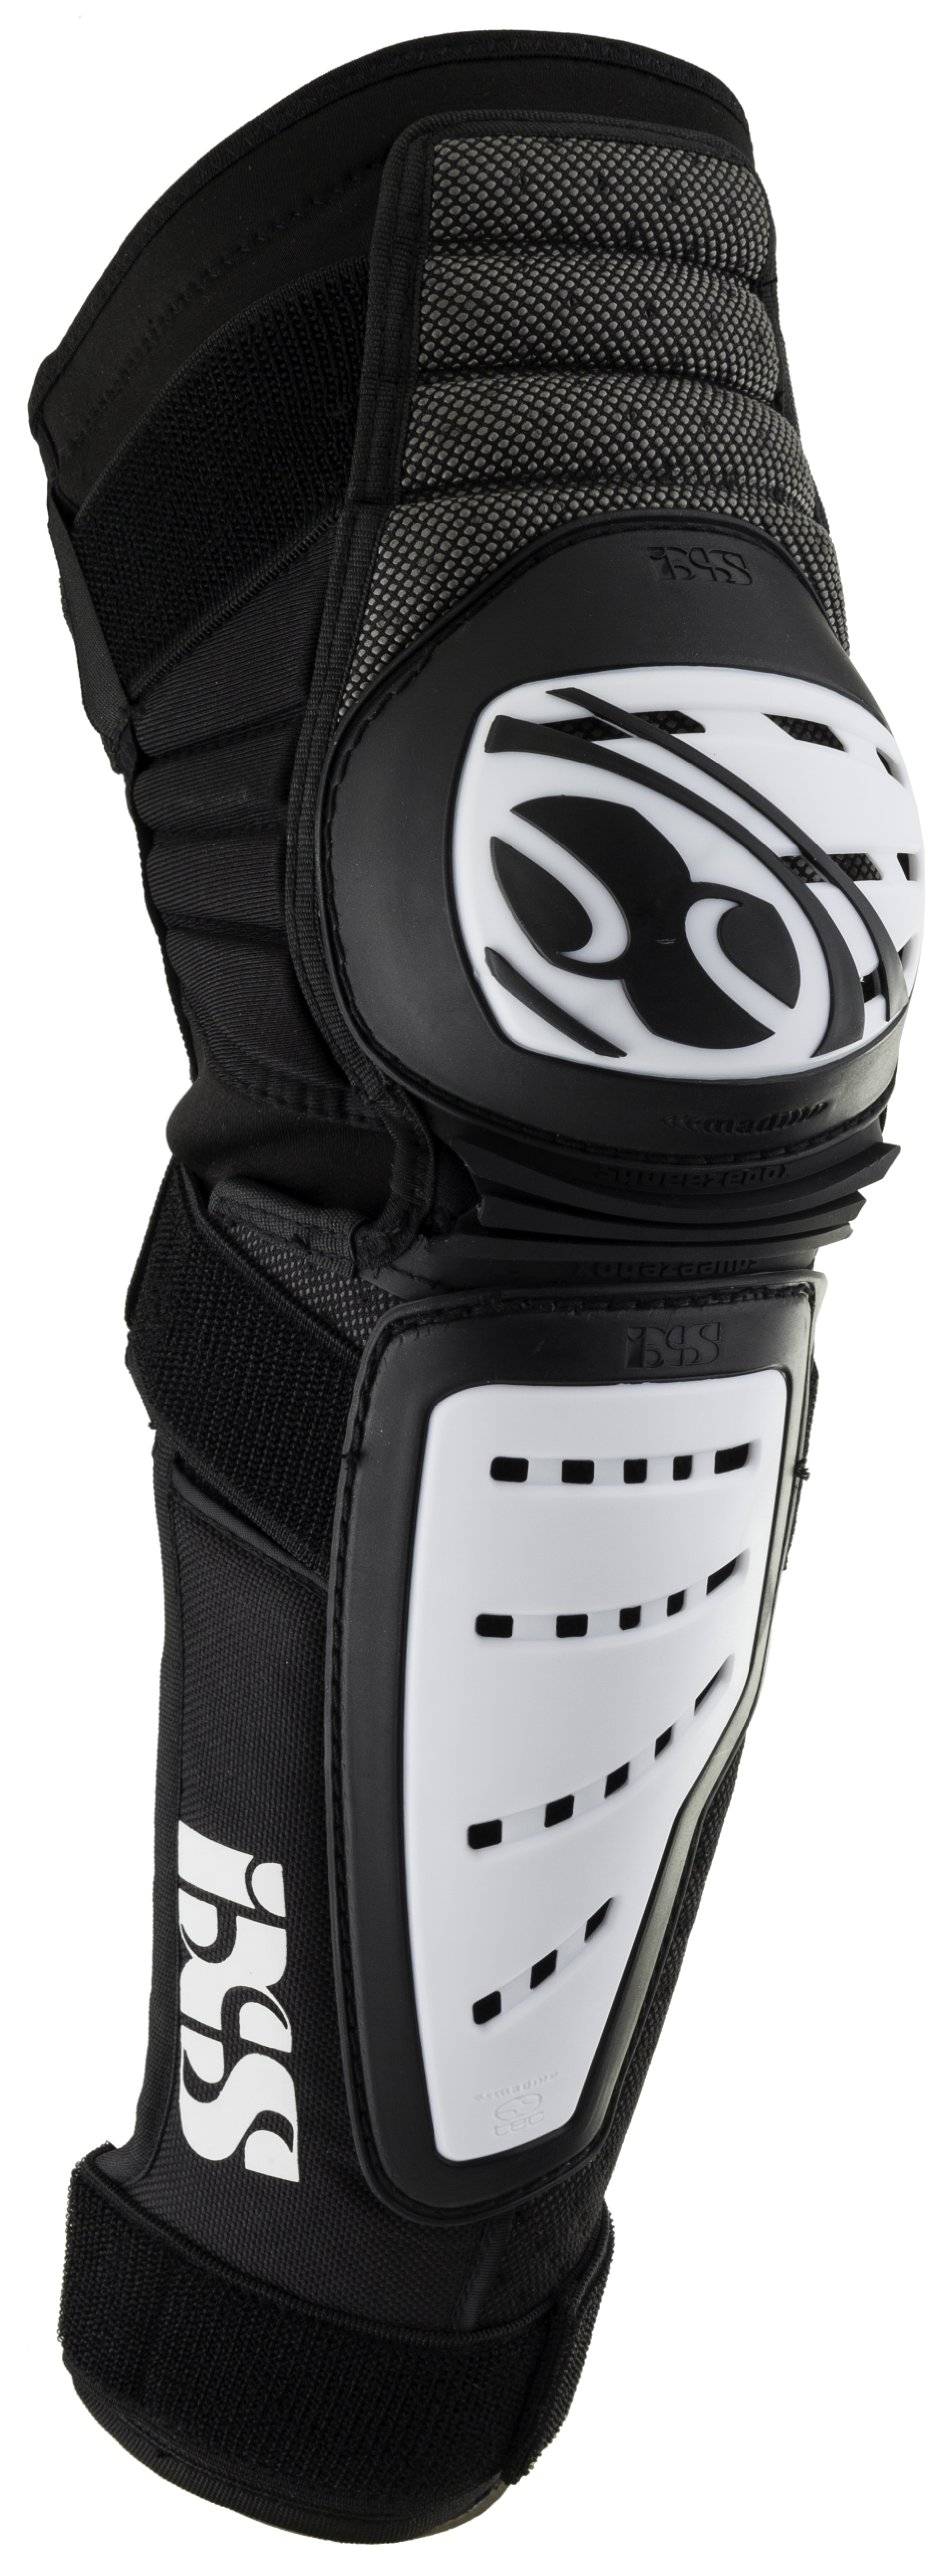 IXS Cleaver Knee/Shin Guards white/black (Size: M) leg protector by IXS (Image #1)